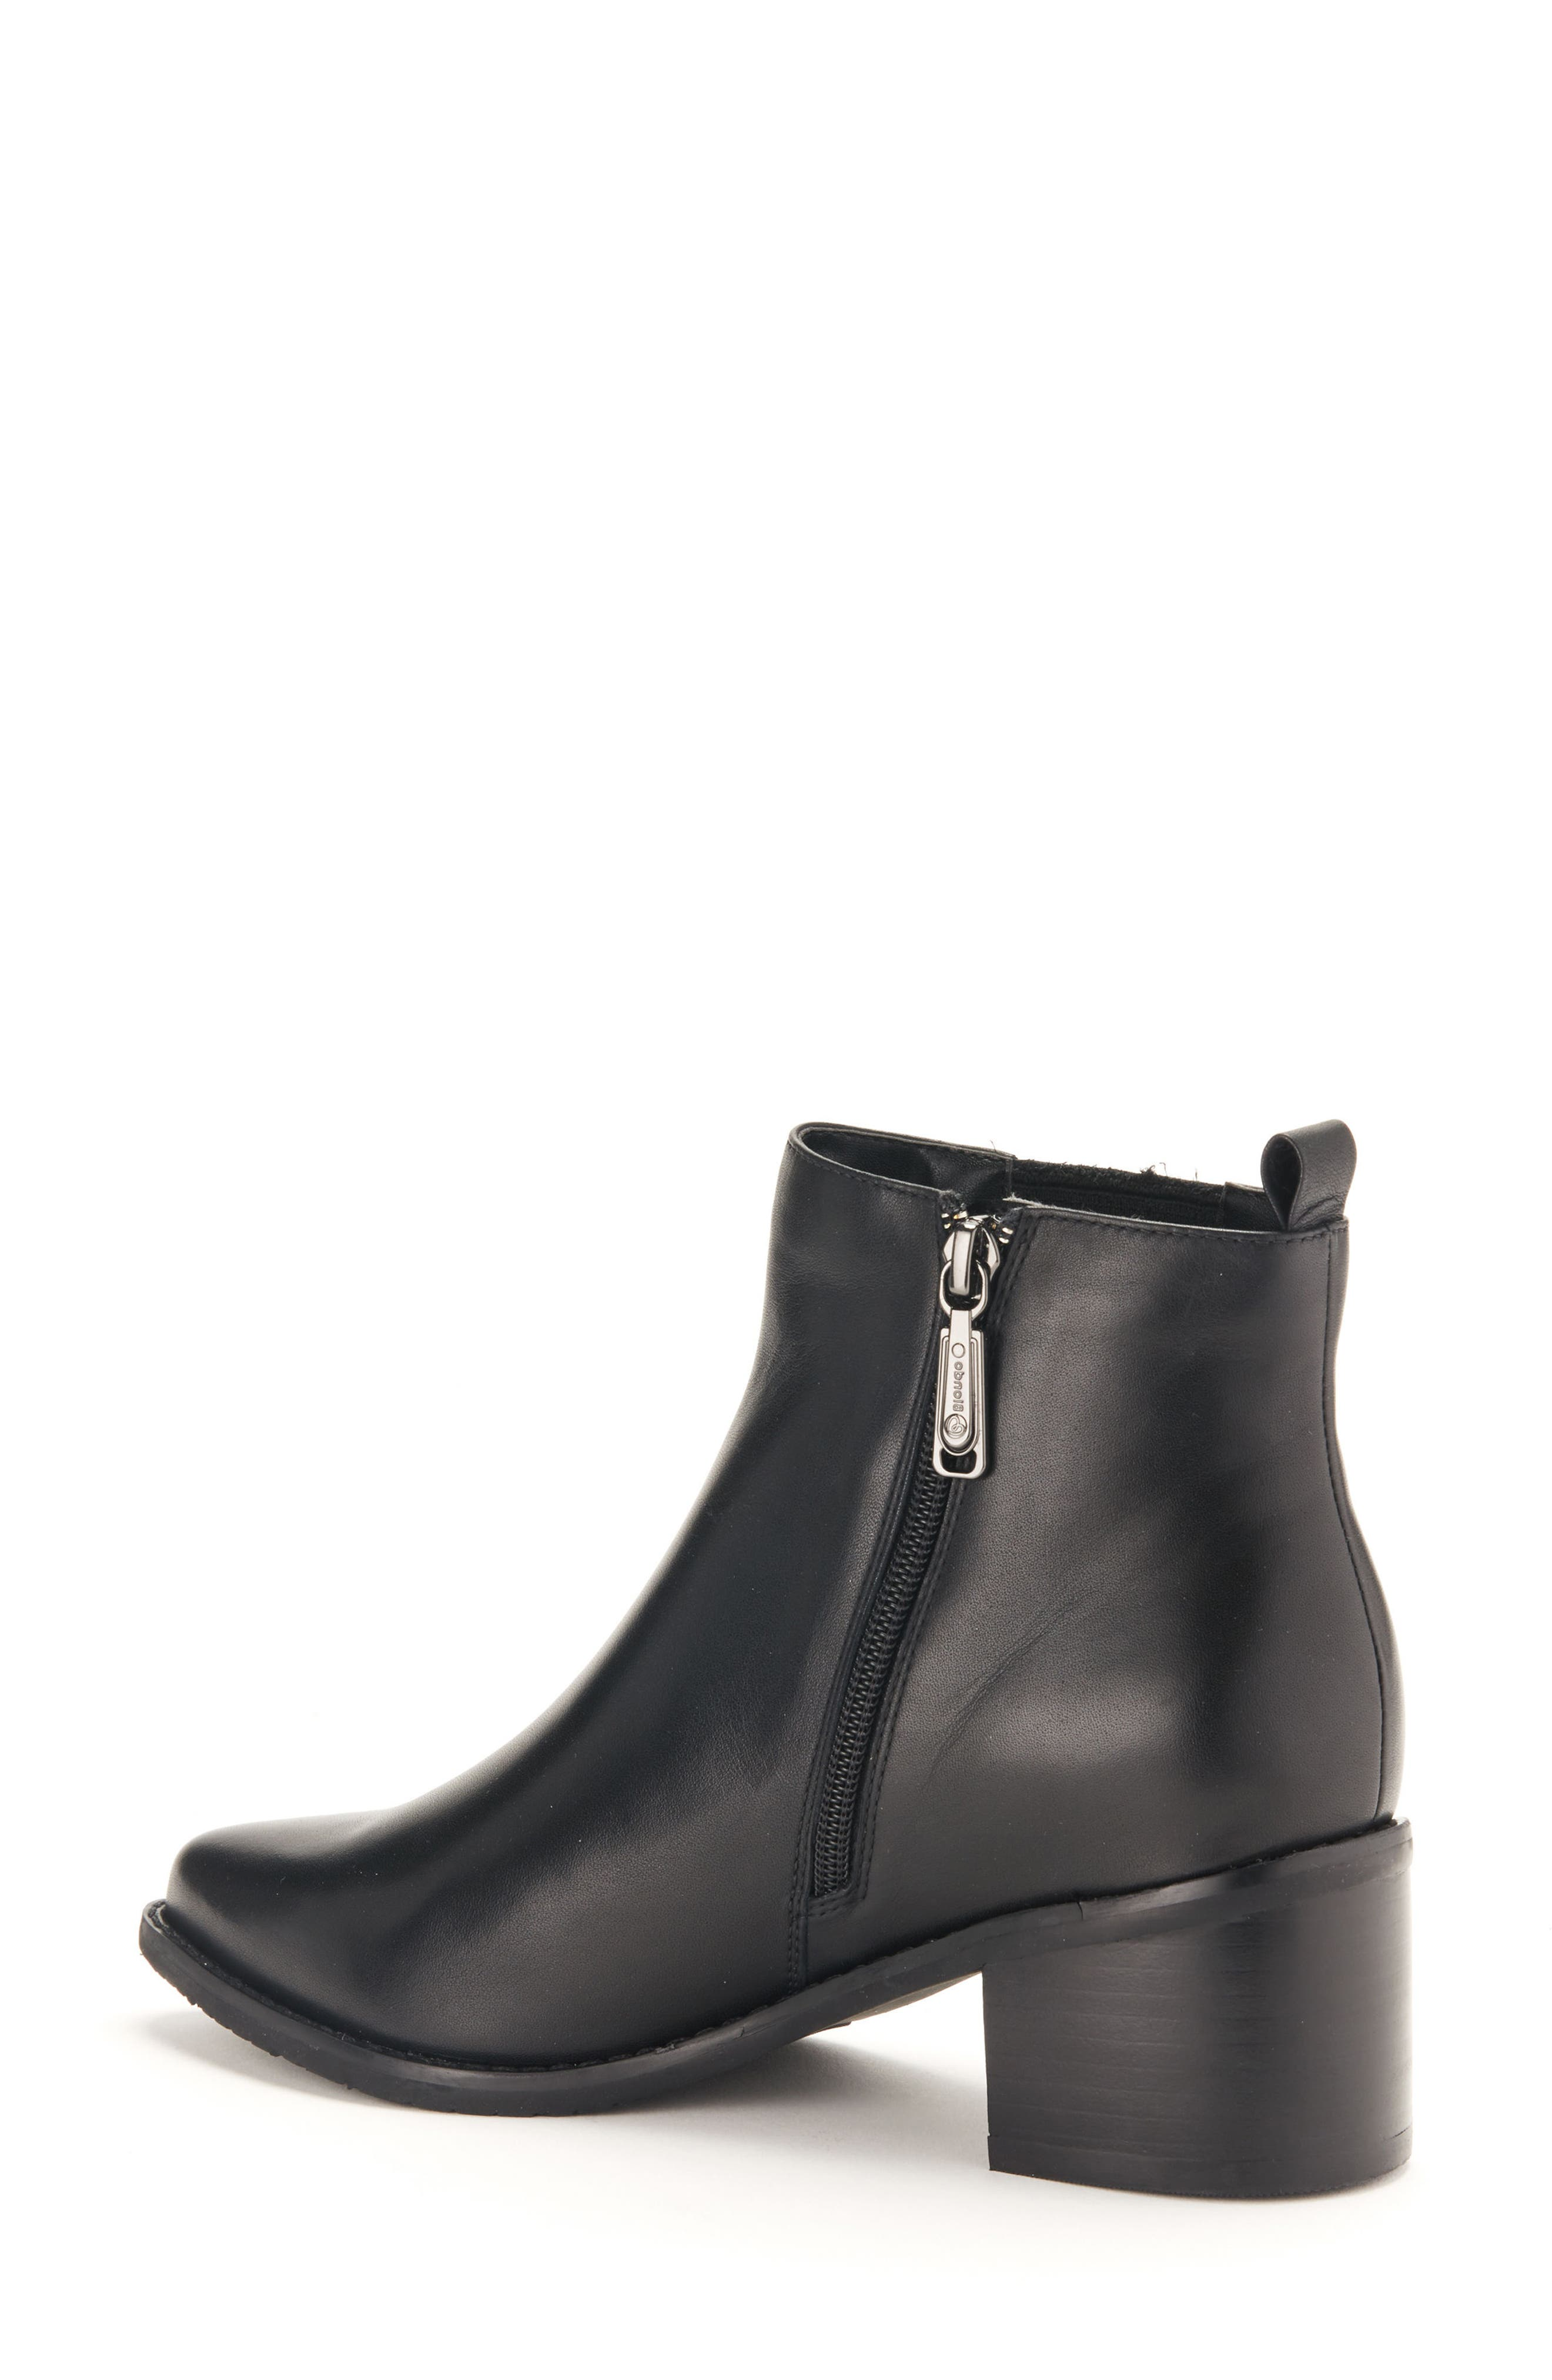 Elvina Waterproof Bootie,                             Alternate thumbnail 2, color,                             Black Leather